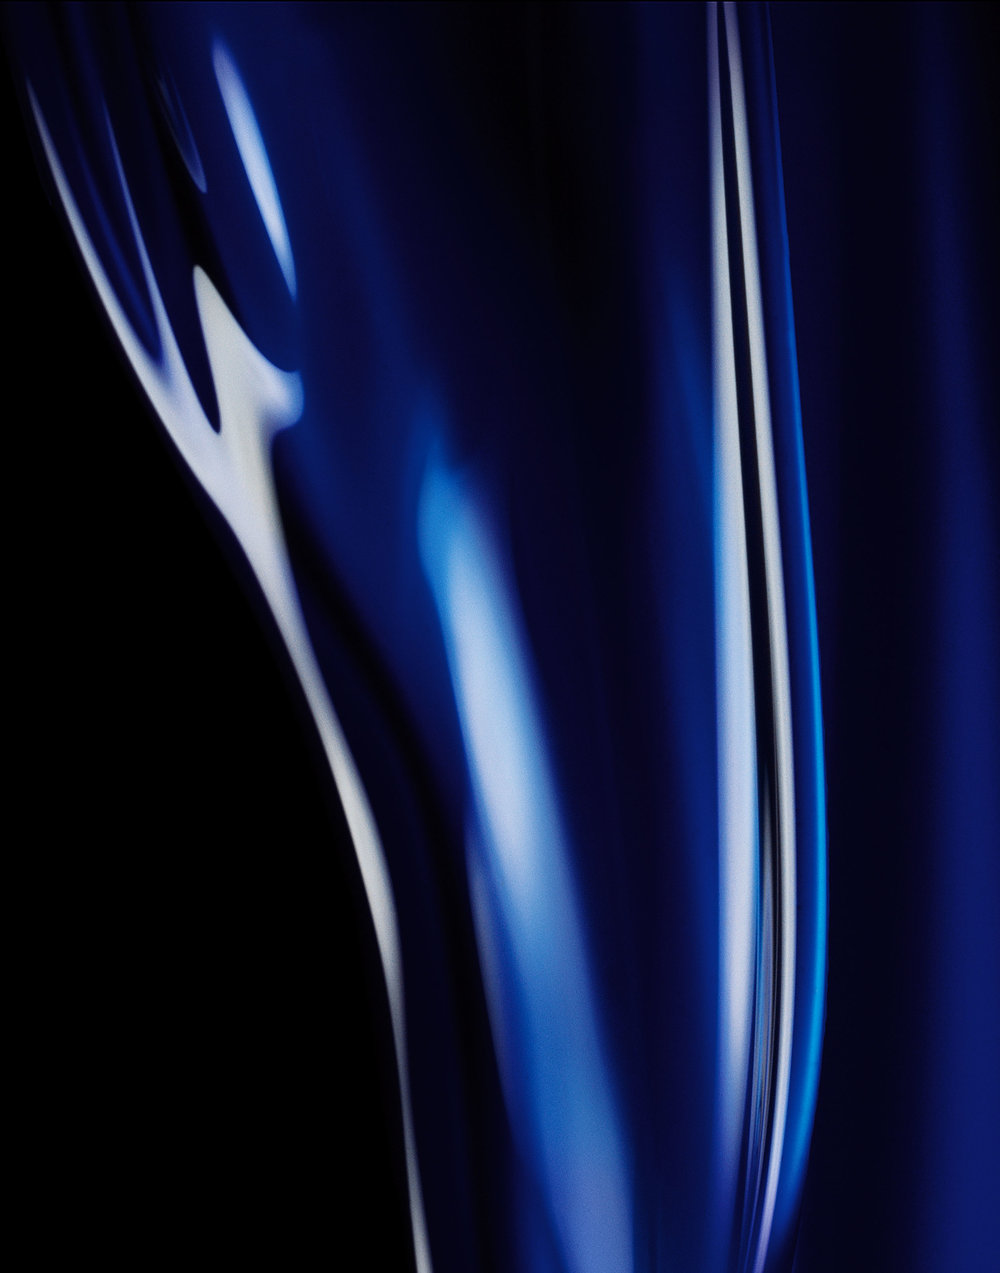 CAV_LL_BLUE LIQUID_MOOD-crop copy.jpg